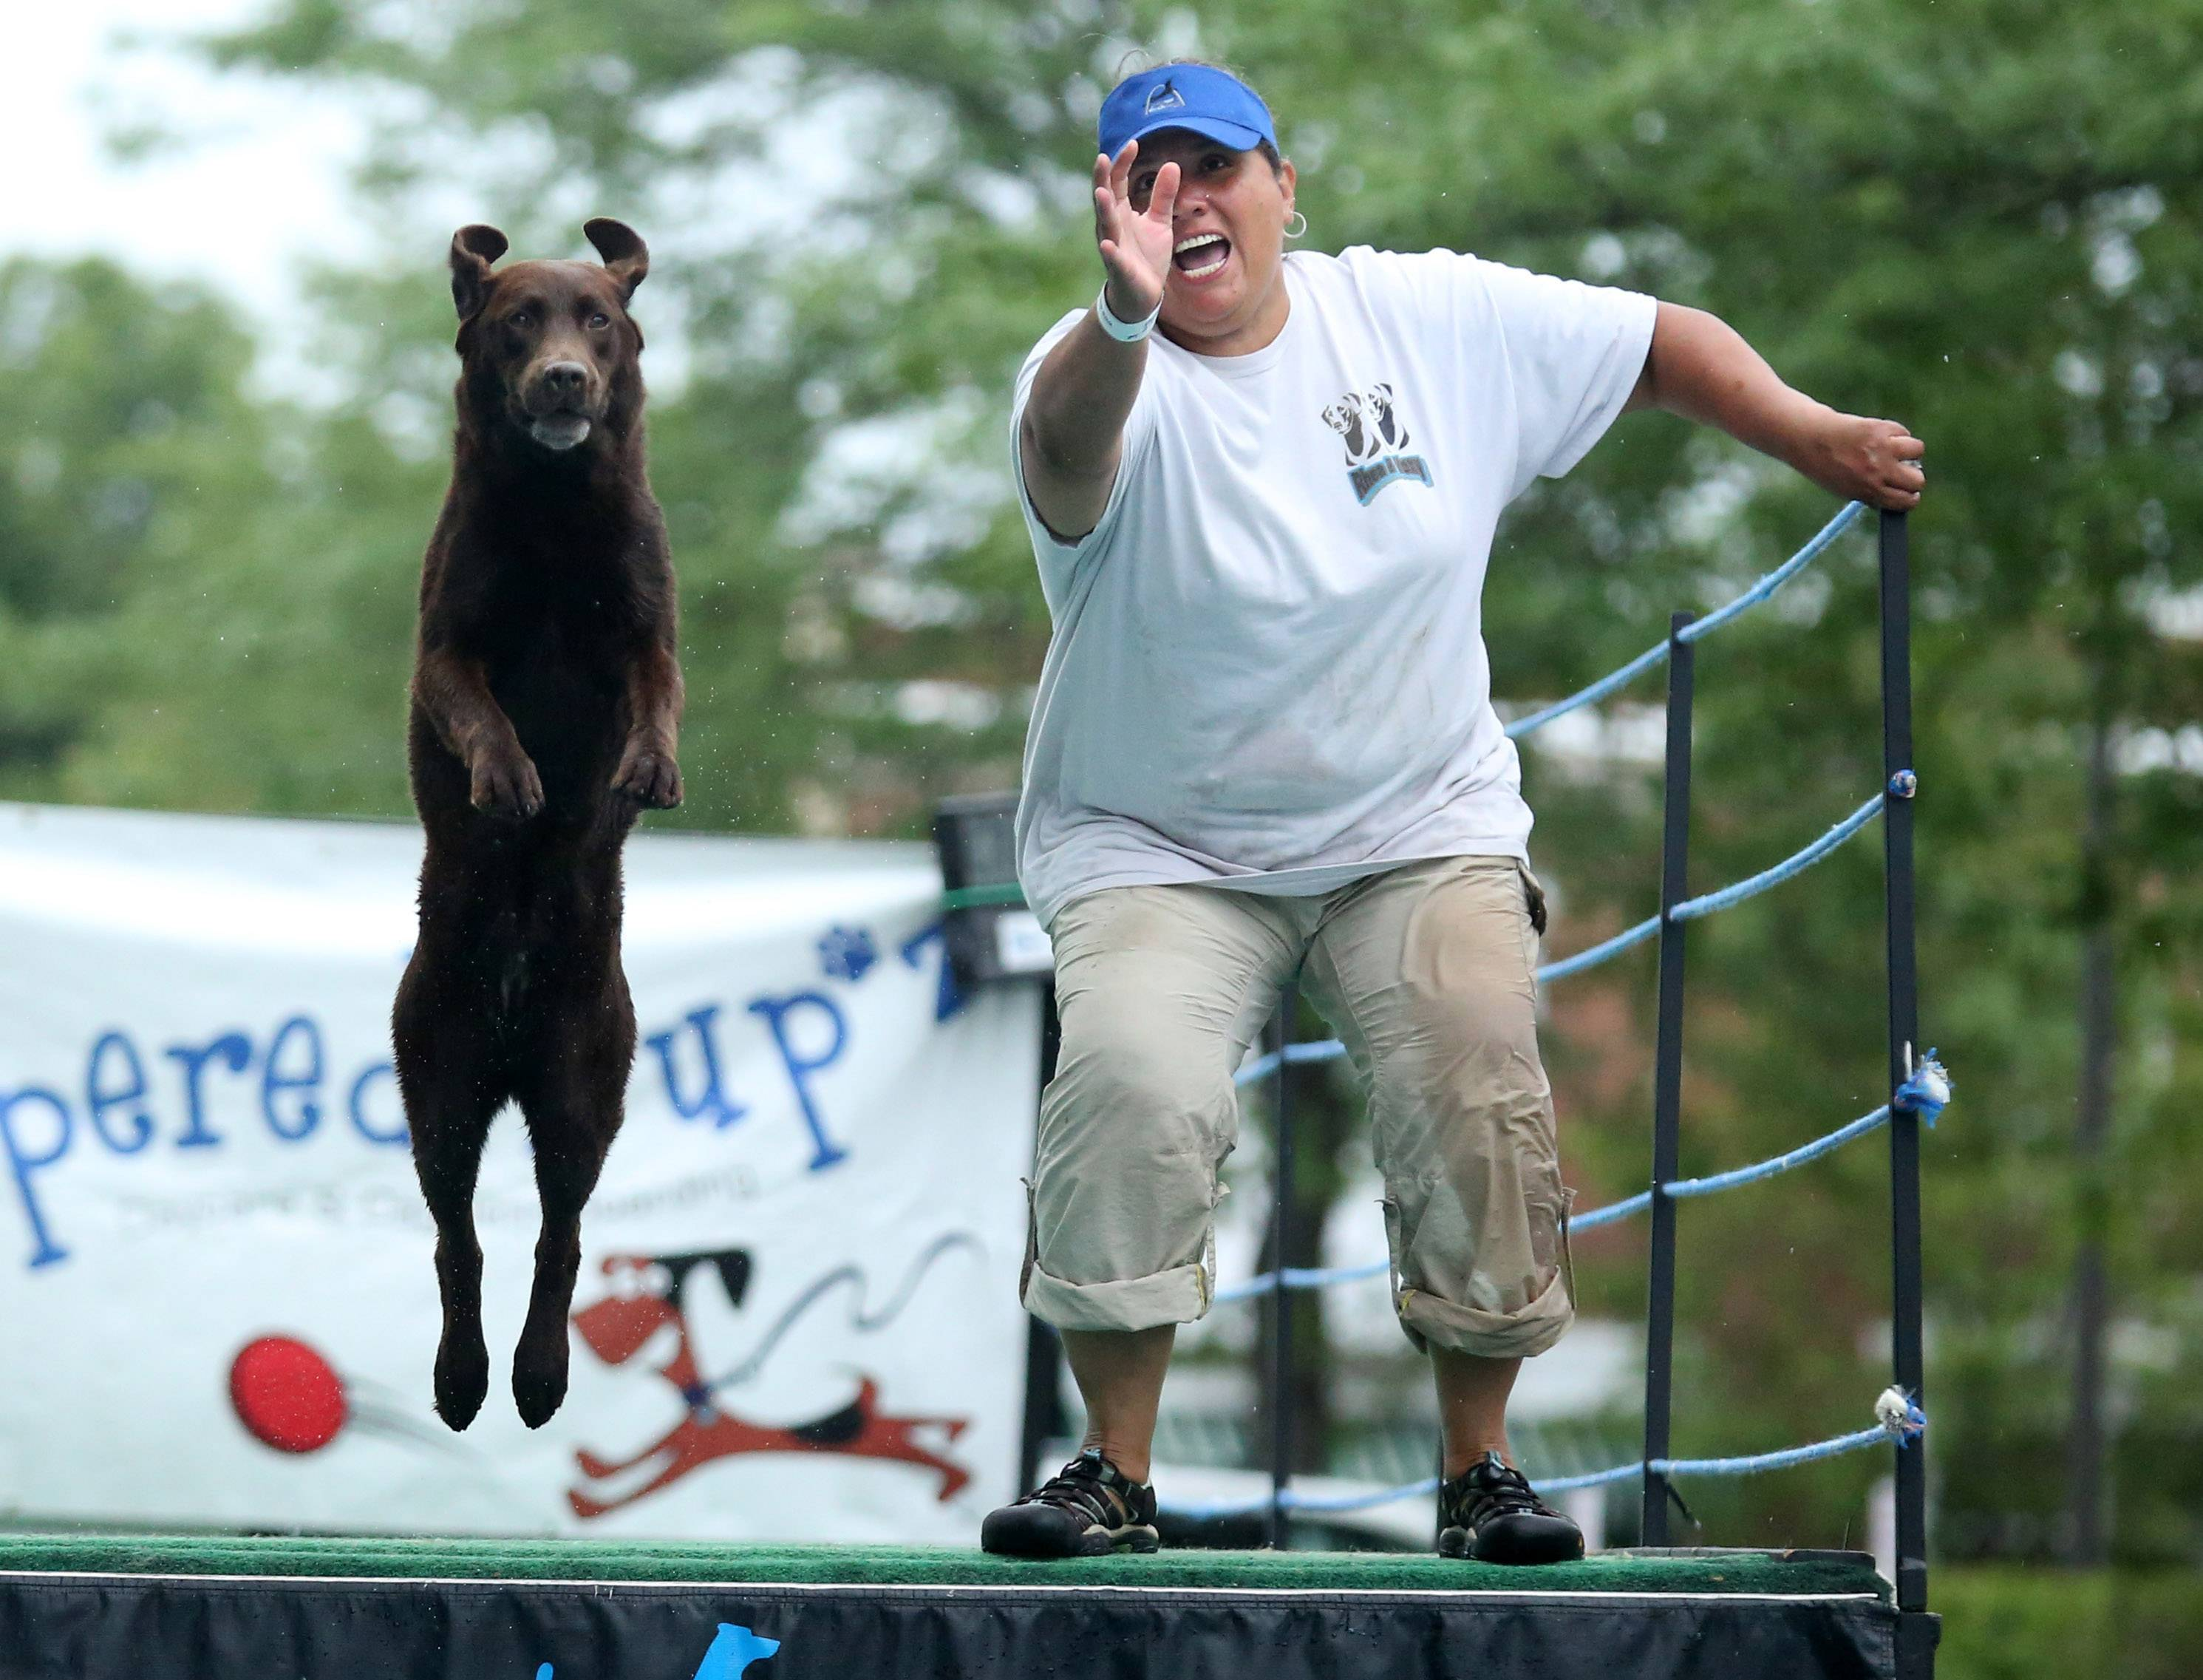 Pilar Zambrono, of Elmhurst, competes with her four year-old chocolate lab, Rhea, at DockDogs Big Air Dog Jumping during Pampered Pup'z Dog Days of Summer on Friday in Libertyville.